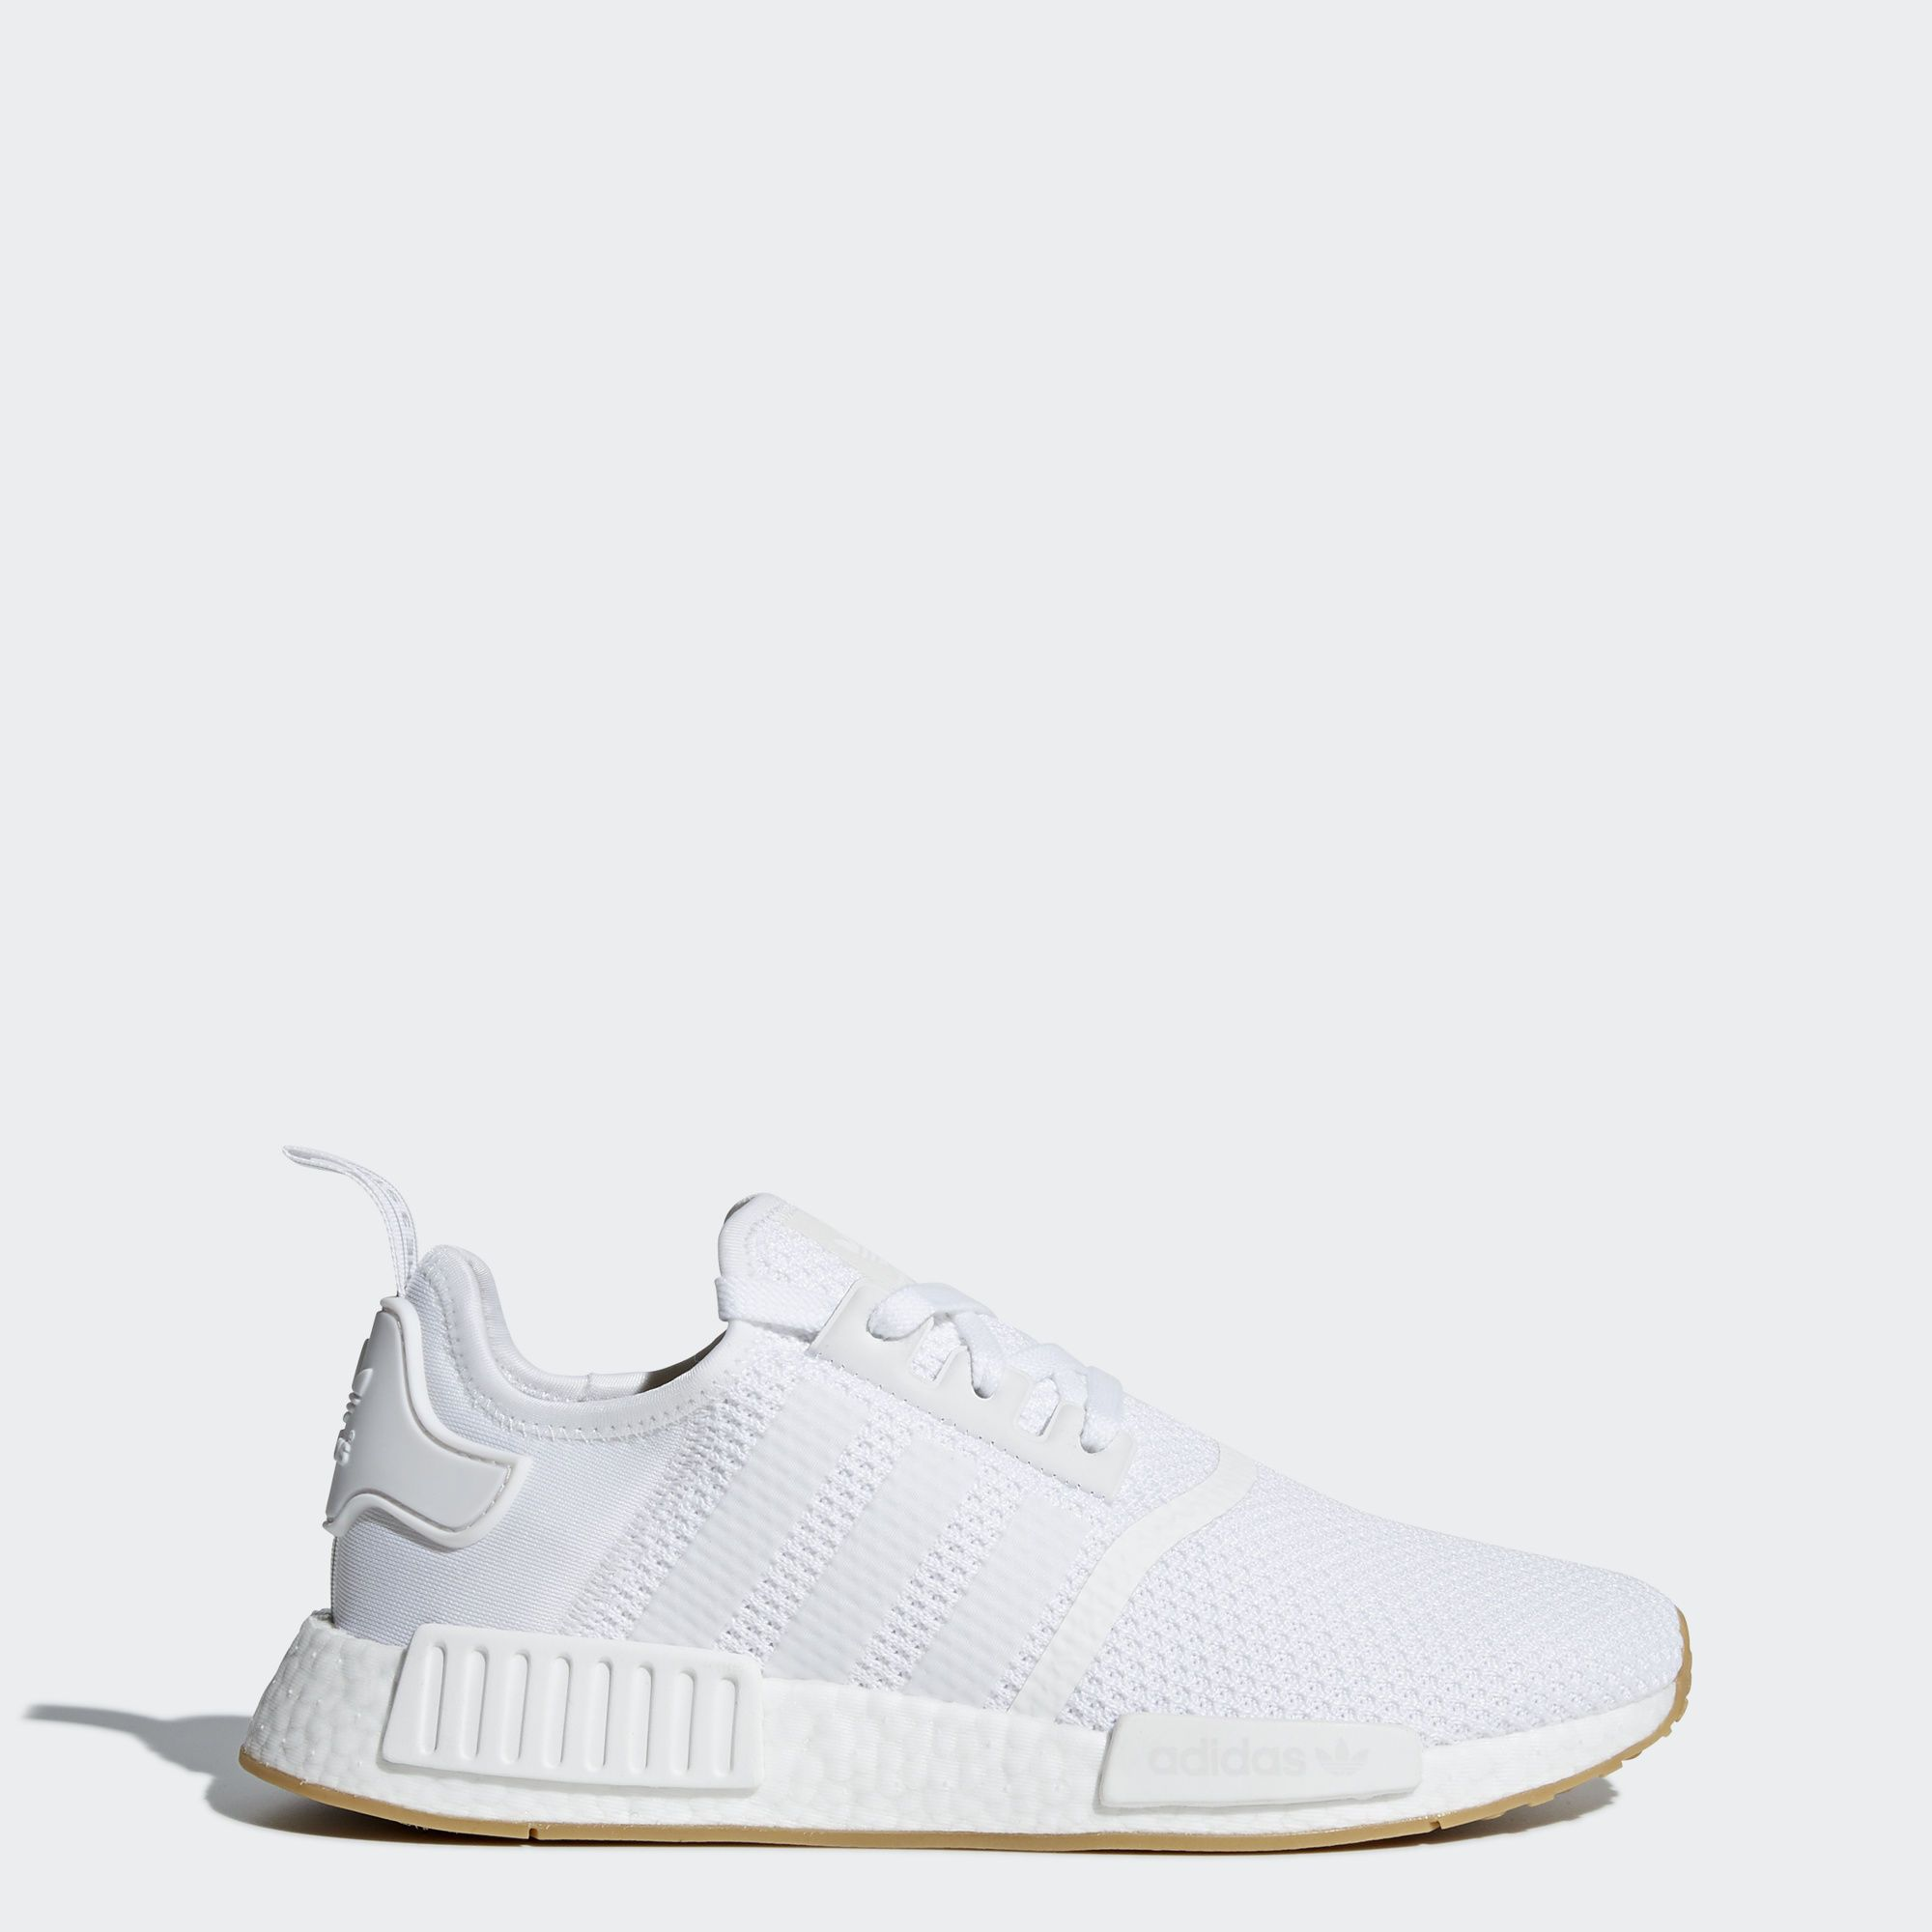 NMD_R1 Shoes | Adidas nmd r1, Adidas nmd, Adidas shoes outlet